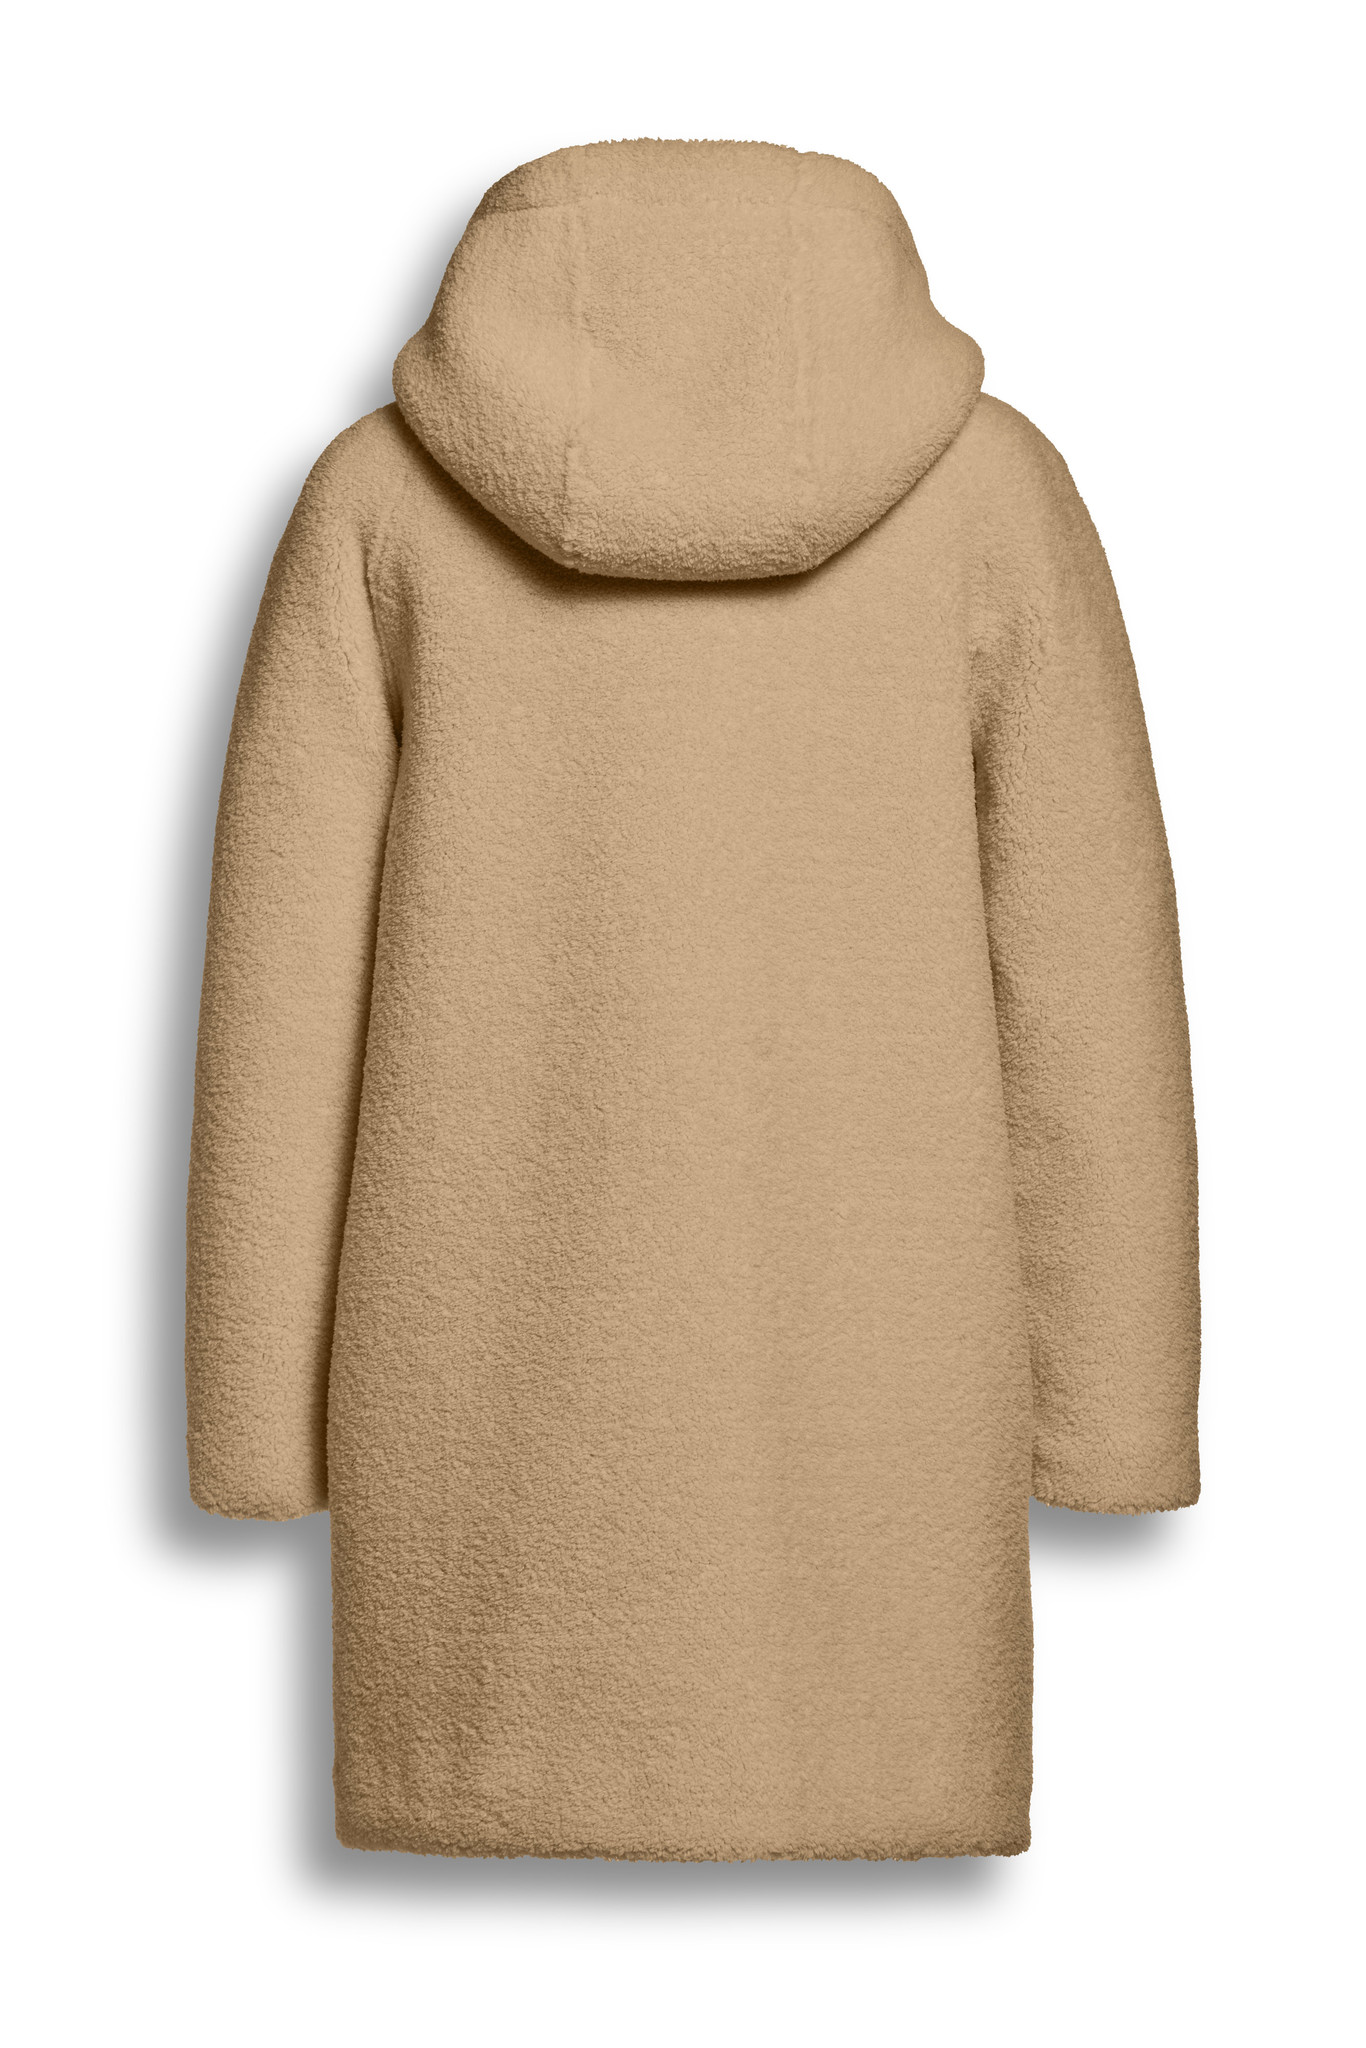 BEAUMONT Teddy Hooded Coat Sand